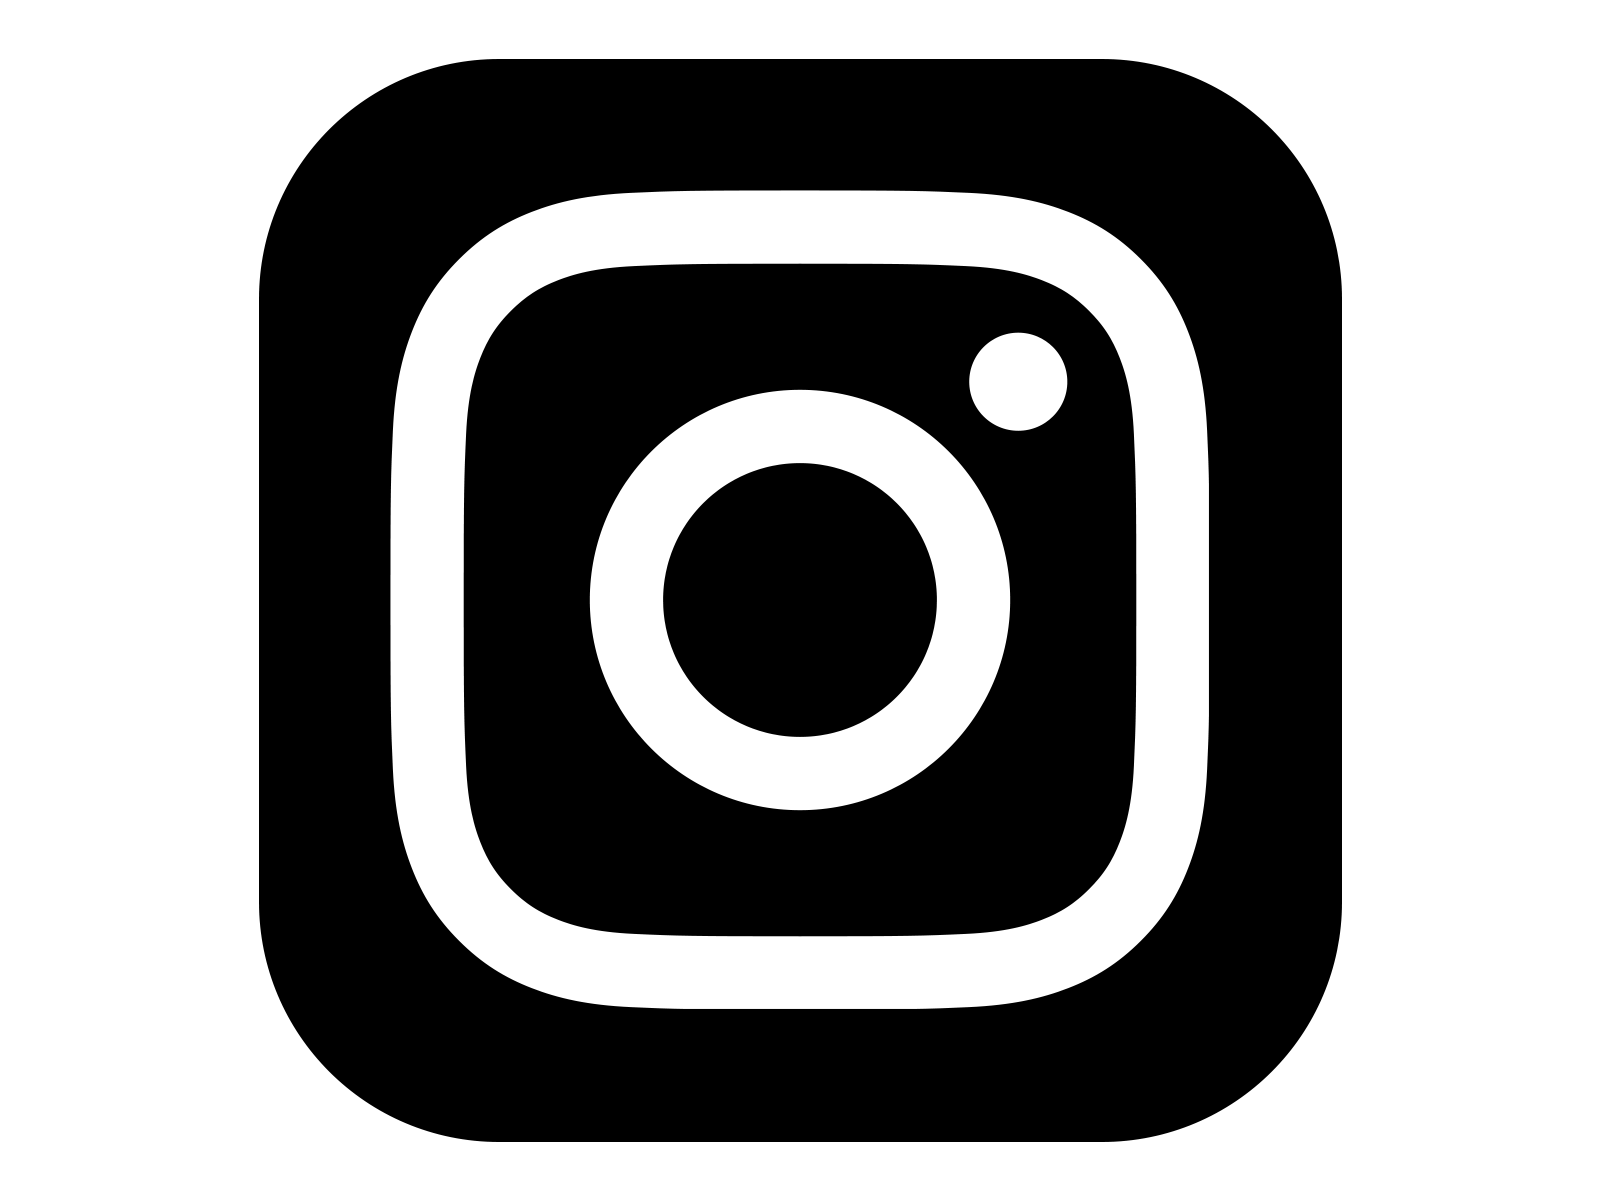 Instagram logo clipart free png black and white download Instagram Logo - Freebie Supply png black and white download